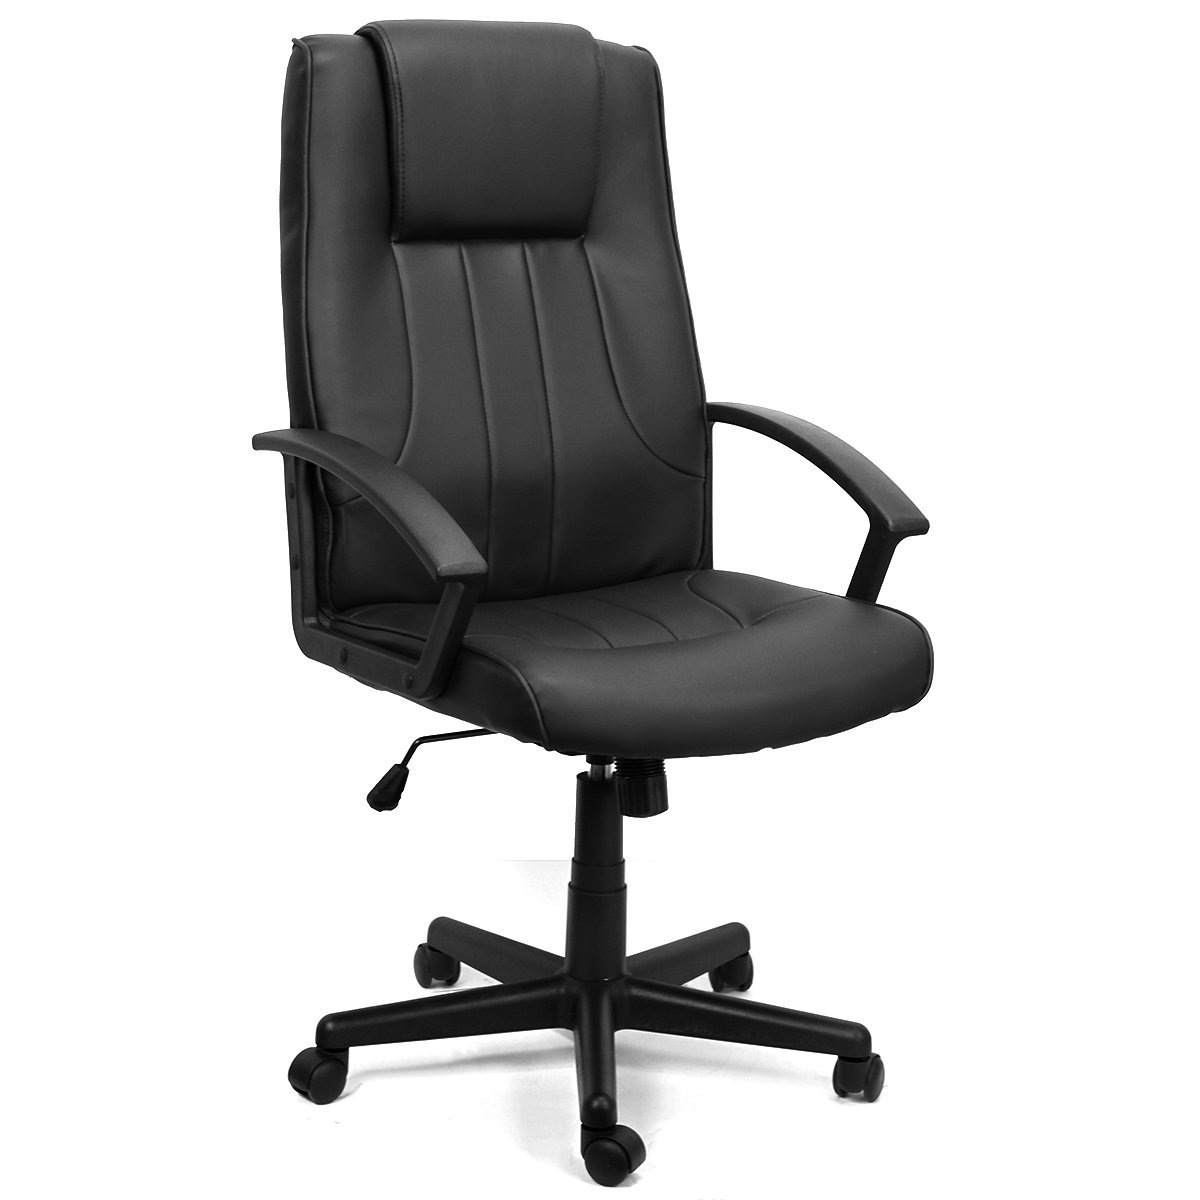 desk chair leans forward cover and sash hire newcastle tag office bloglikes